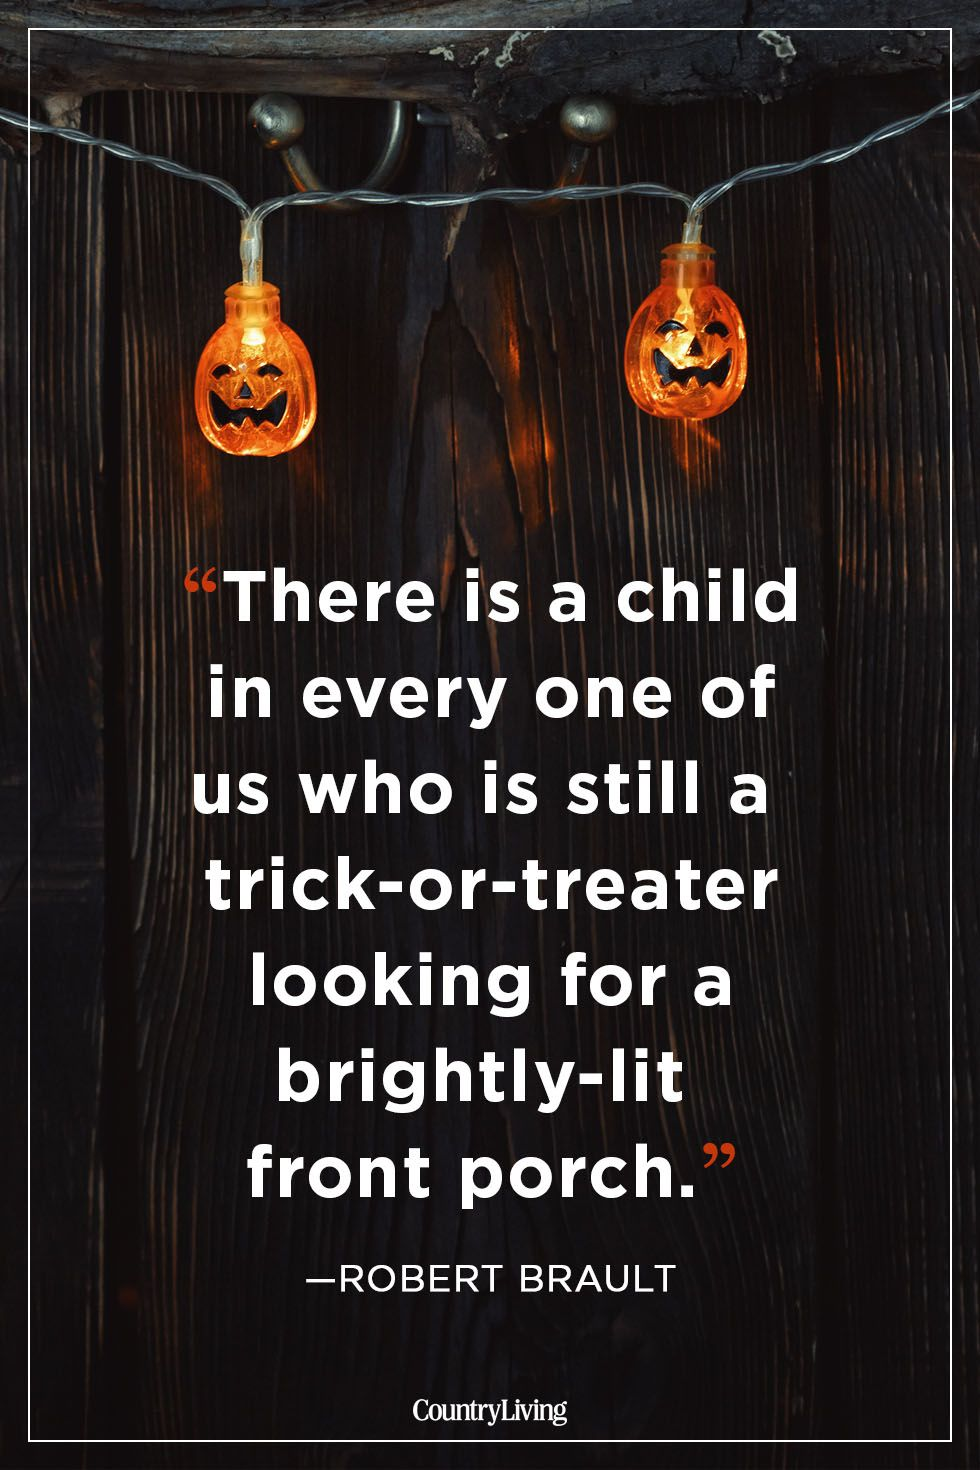 Image of: Jokes Funny Country Living Magazine 30 Happy Halloween Quotes Best Spooky Halloween Quotes And Sayings